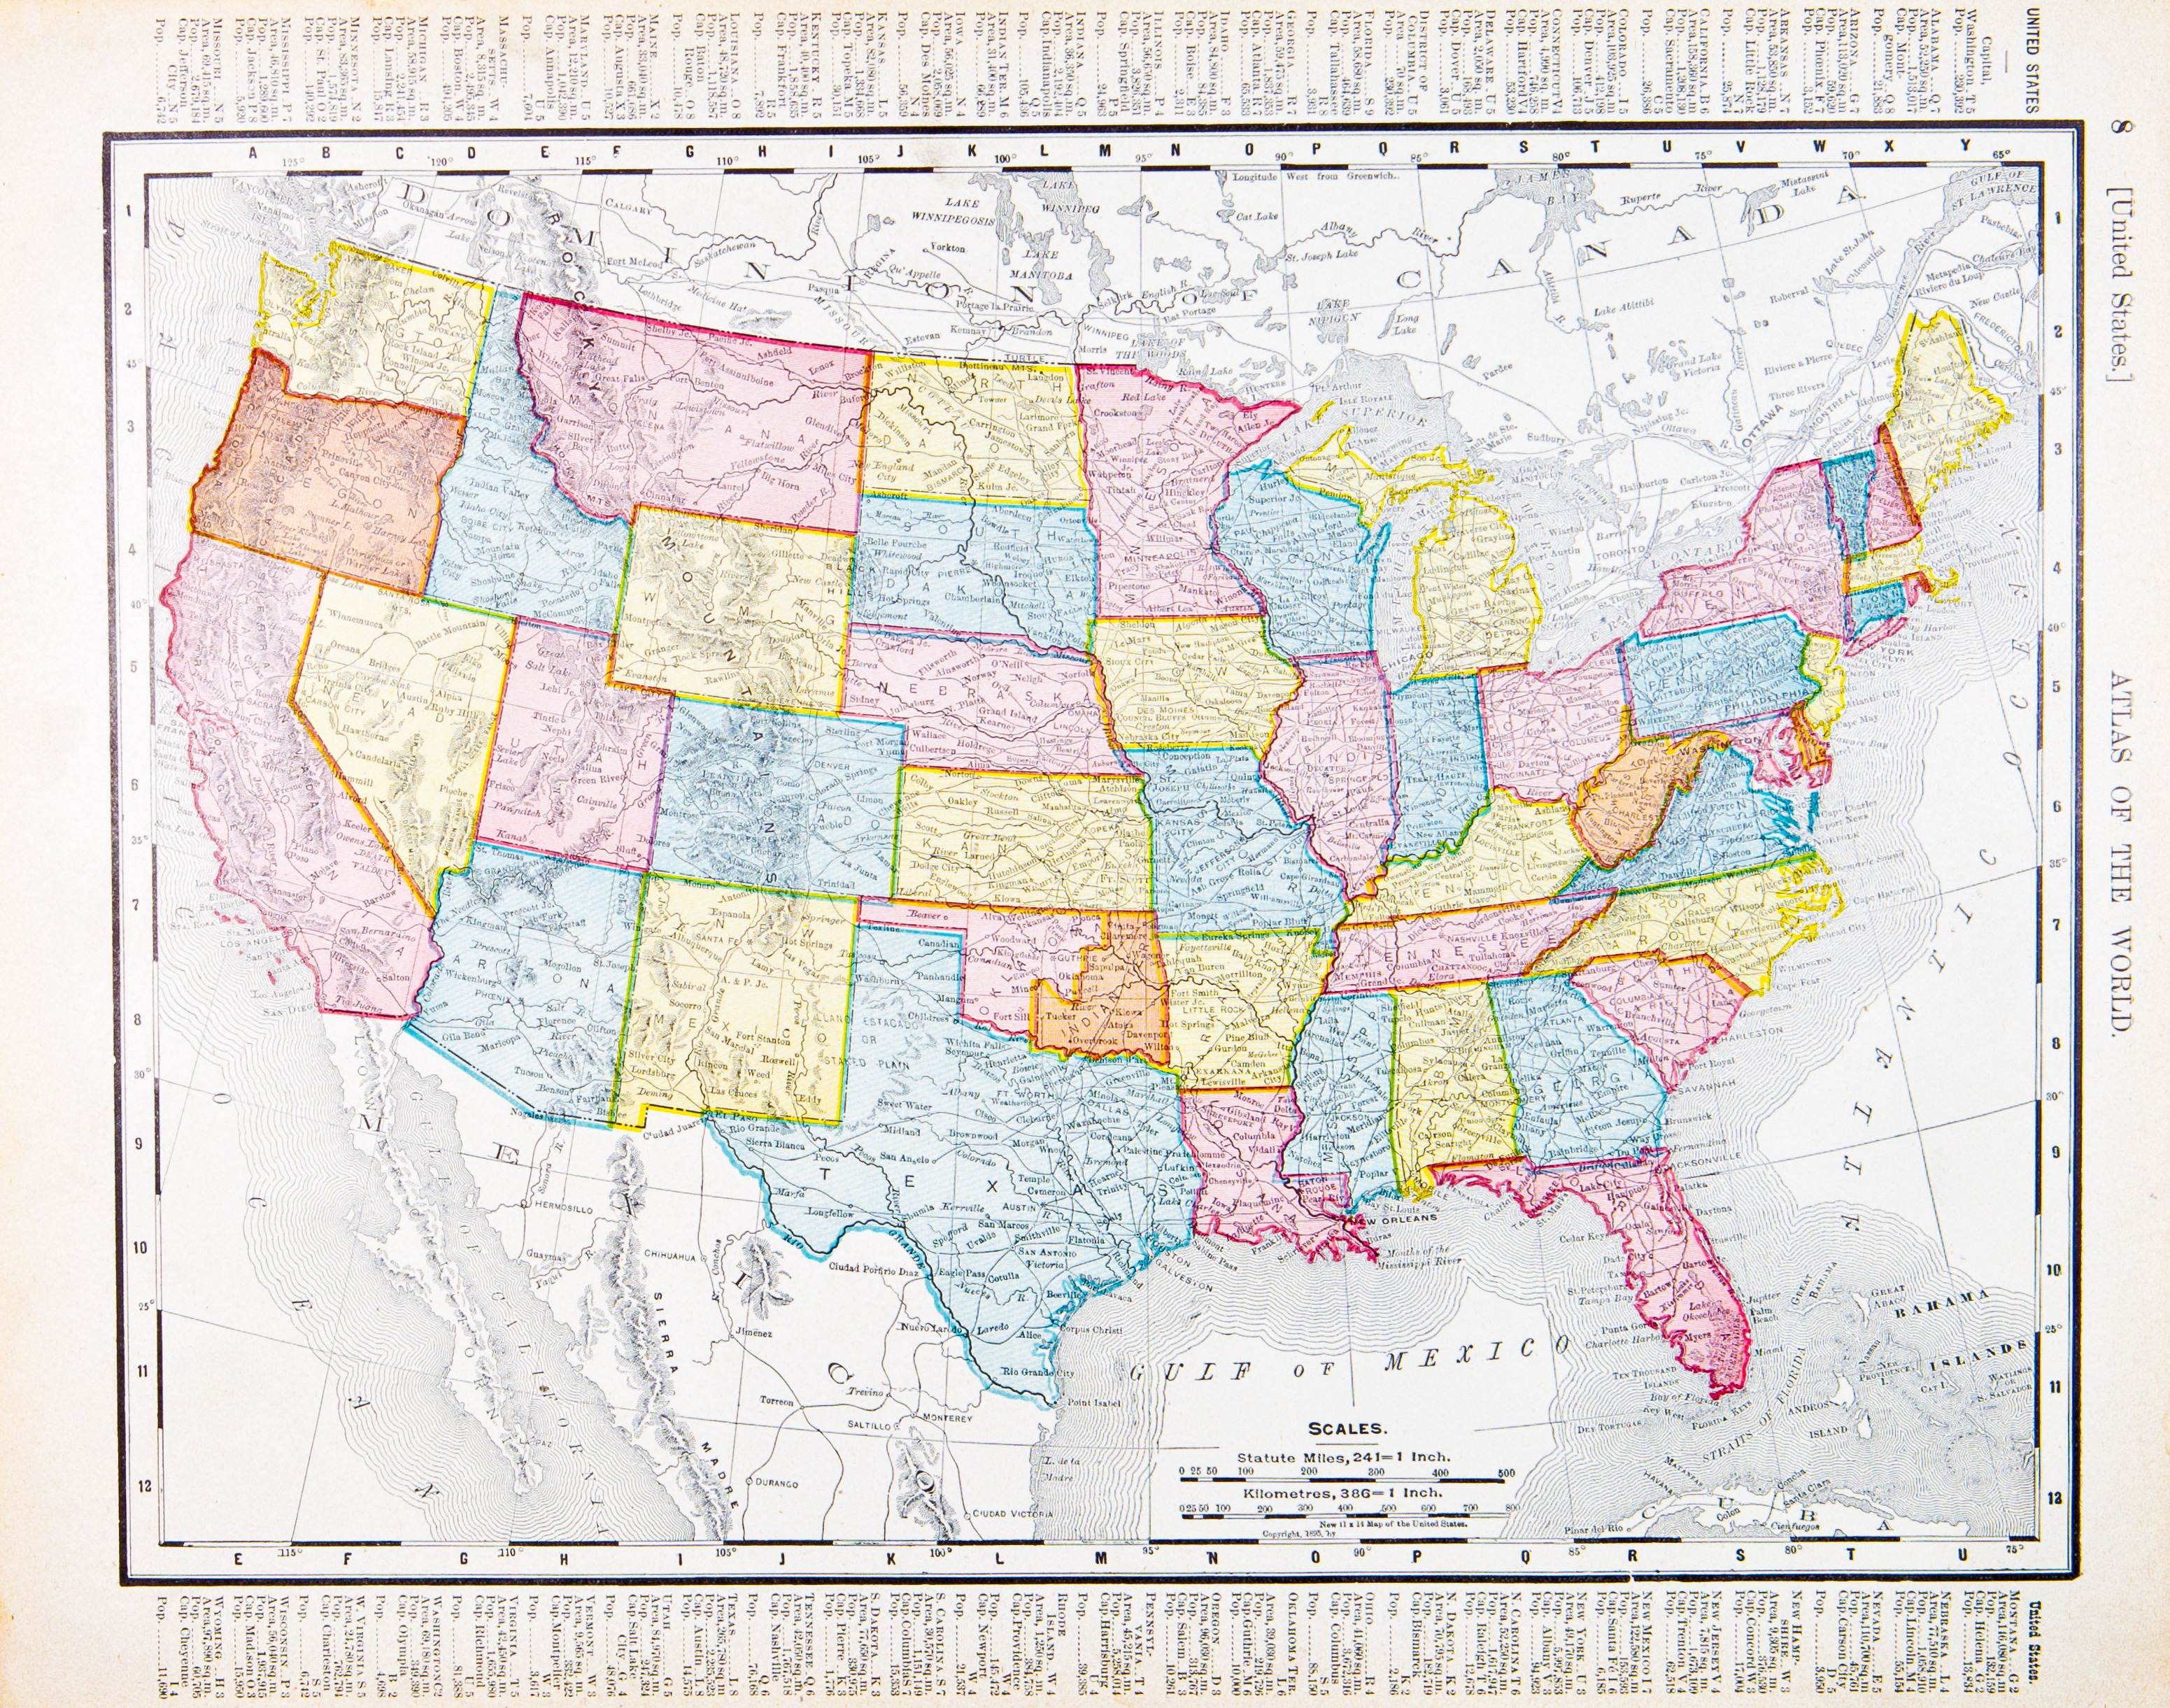 map of no fault states in united states